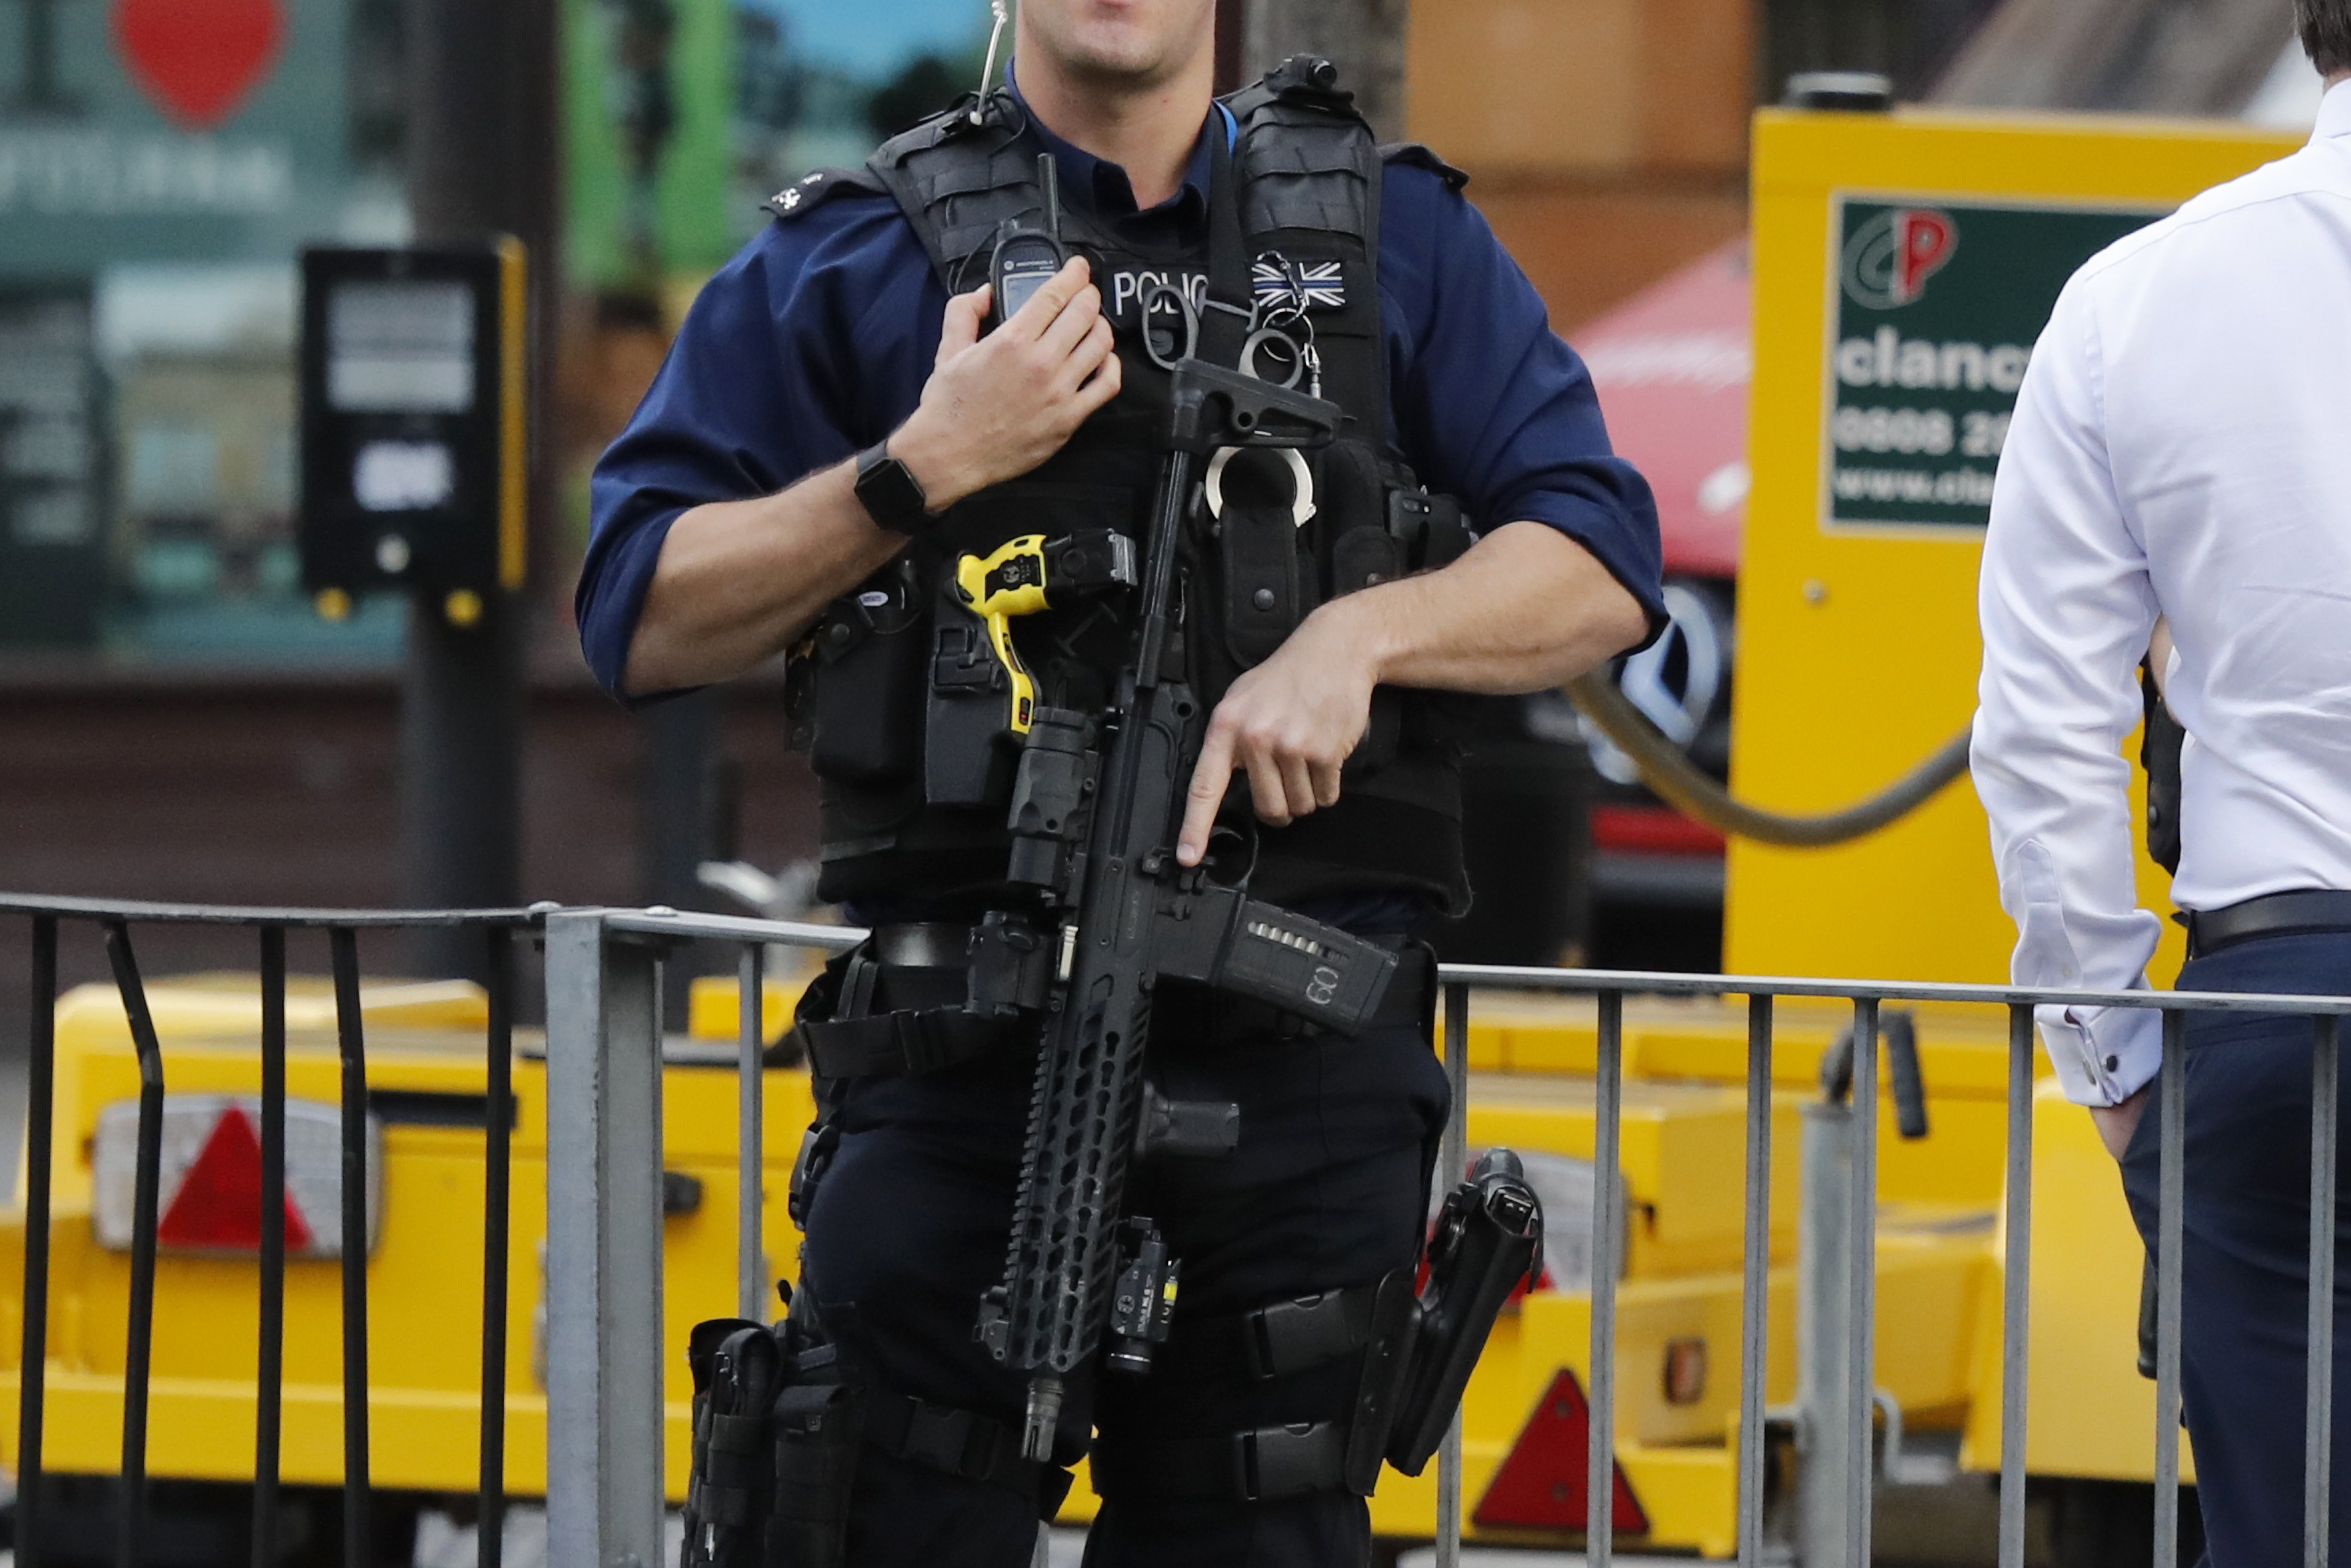 <div class='meta'><div class='origin-logo' data-origin='none'></div><span class='caption-text' data-credit='Frank Augstein/AP Photo'>An armed police officer stands nearby after an incident on a tube train at Parsons Green subway station in London, Friday, Sept. 15, 2017.</span></div>